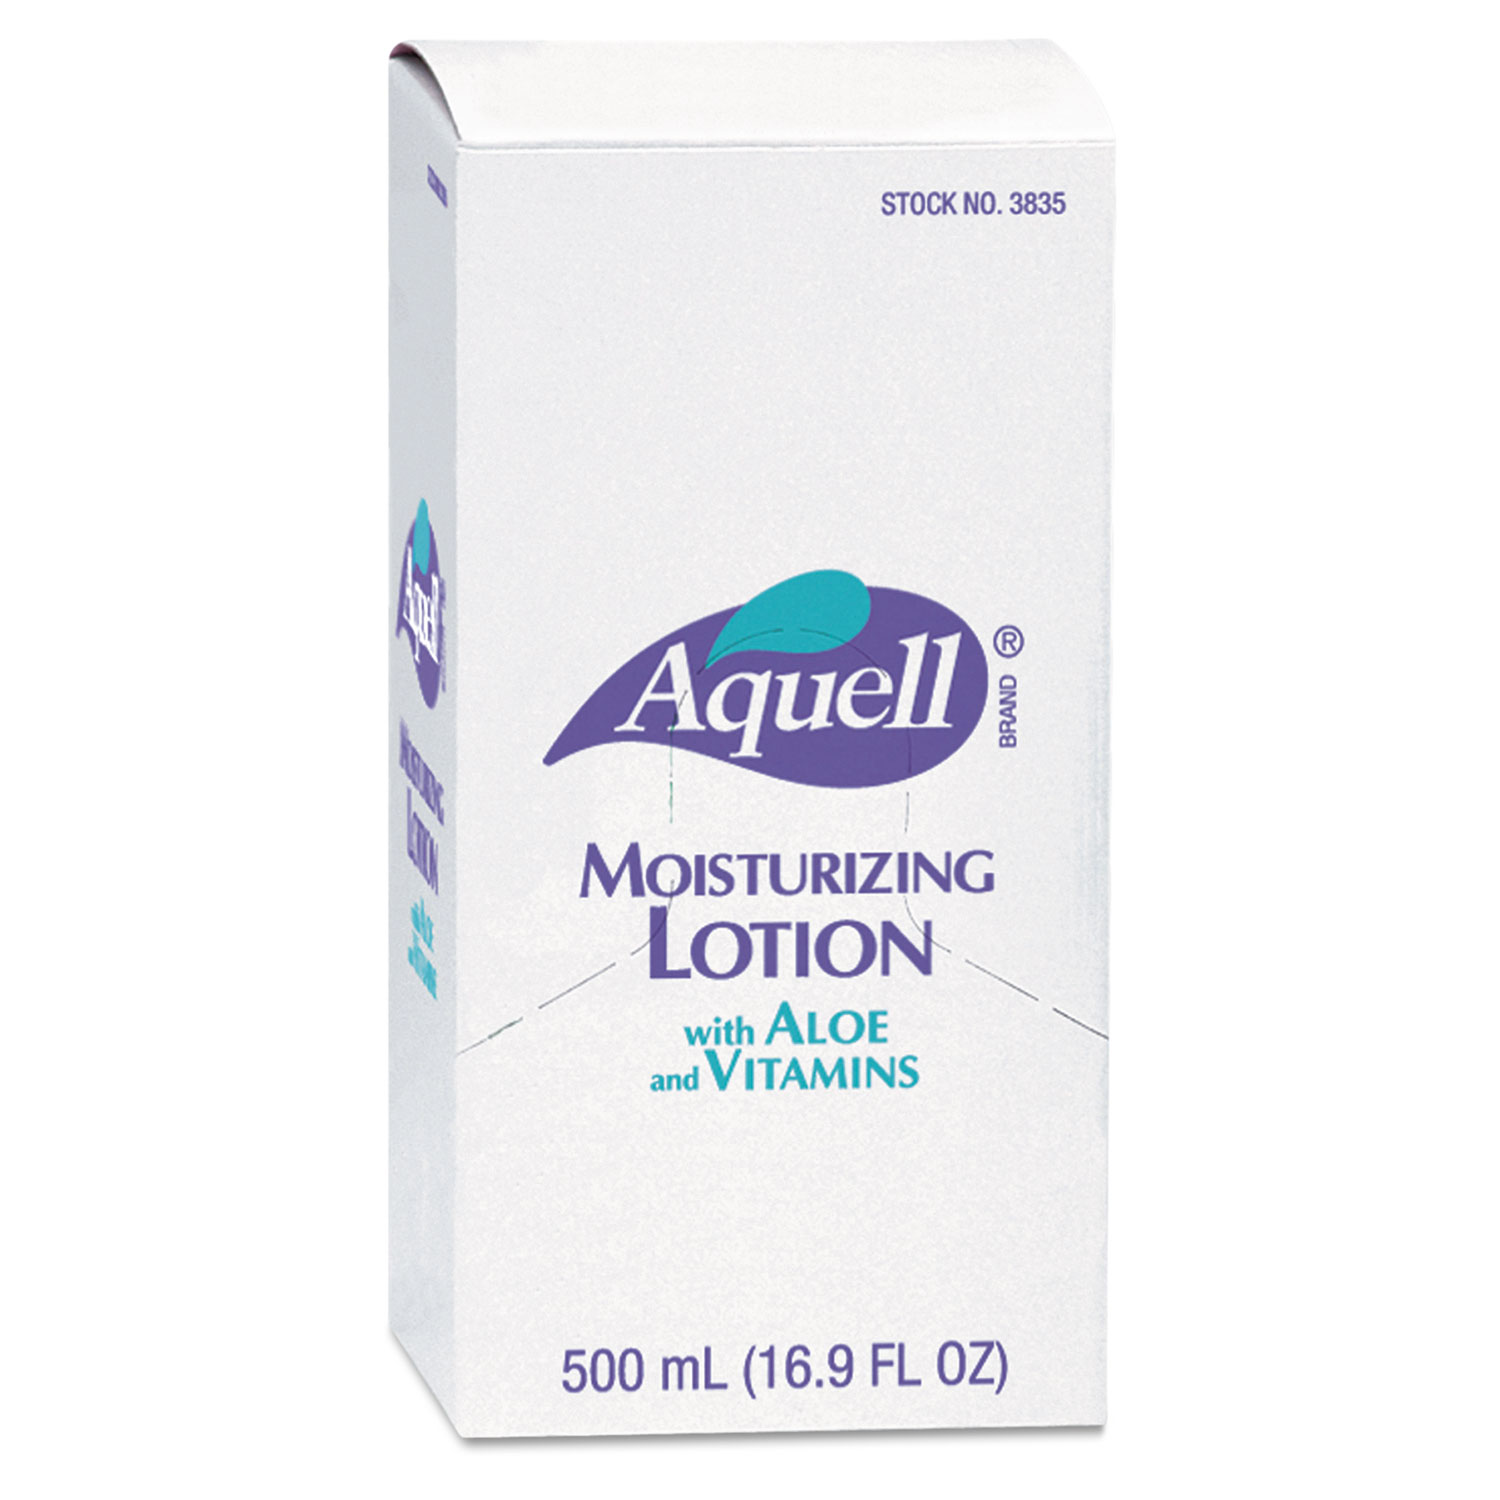 LOTION,AQUELL,MOIST,500ML